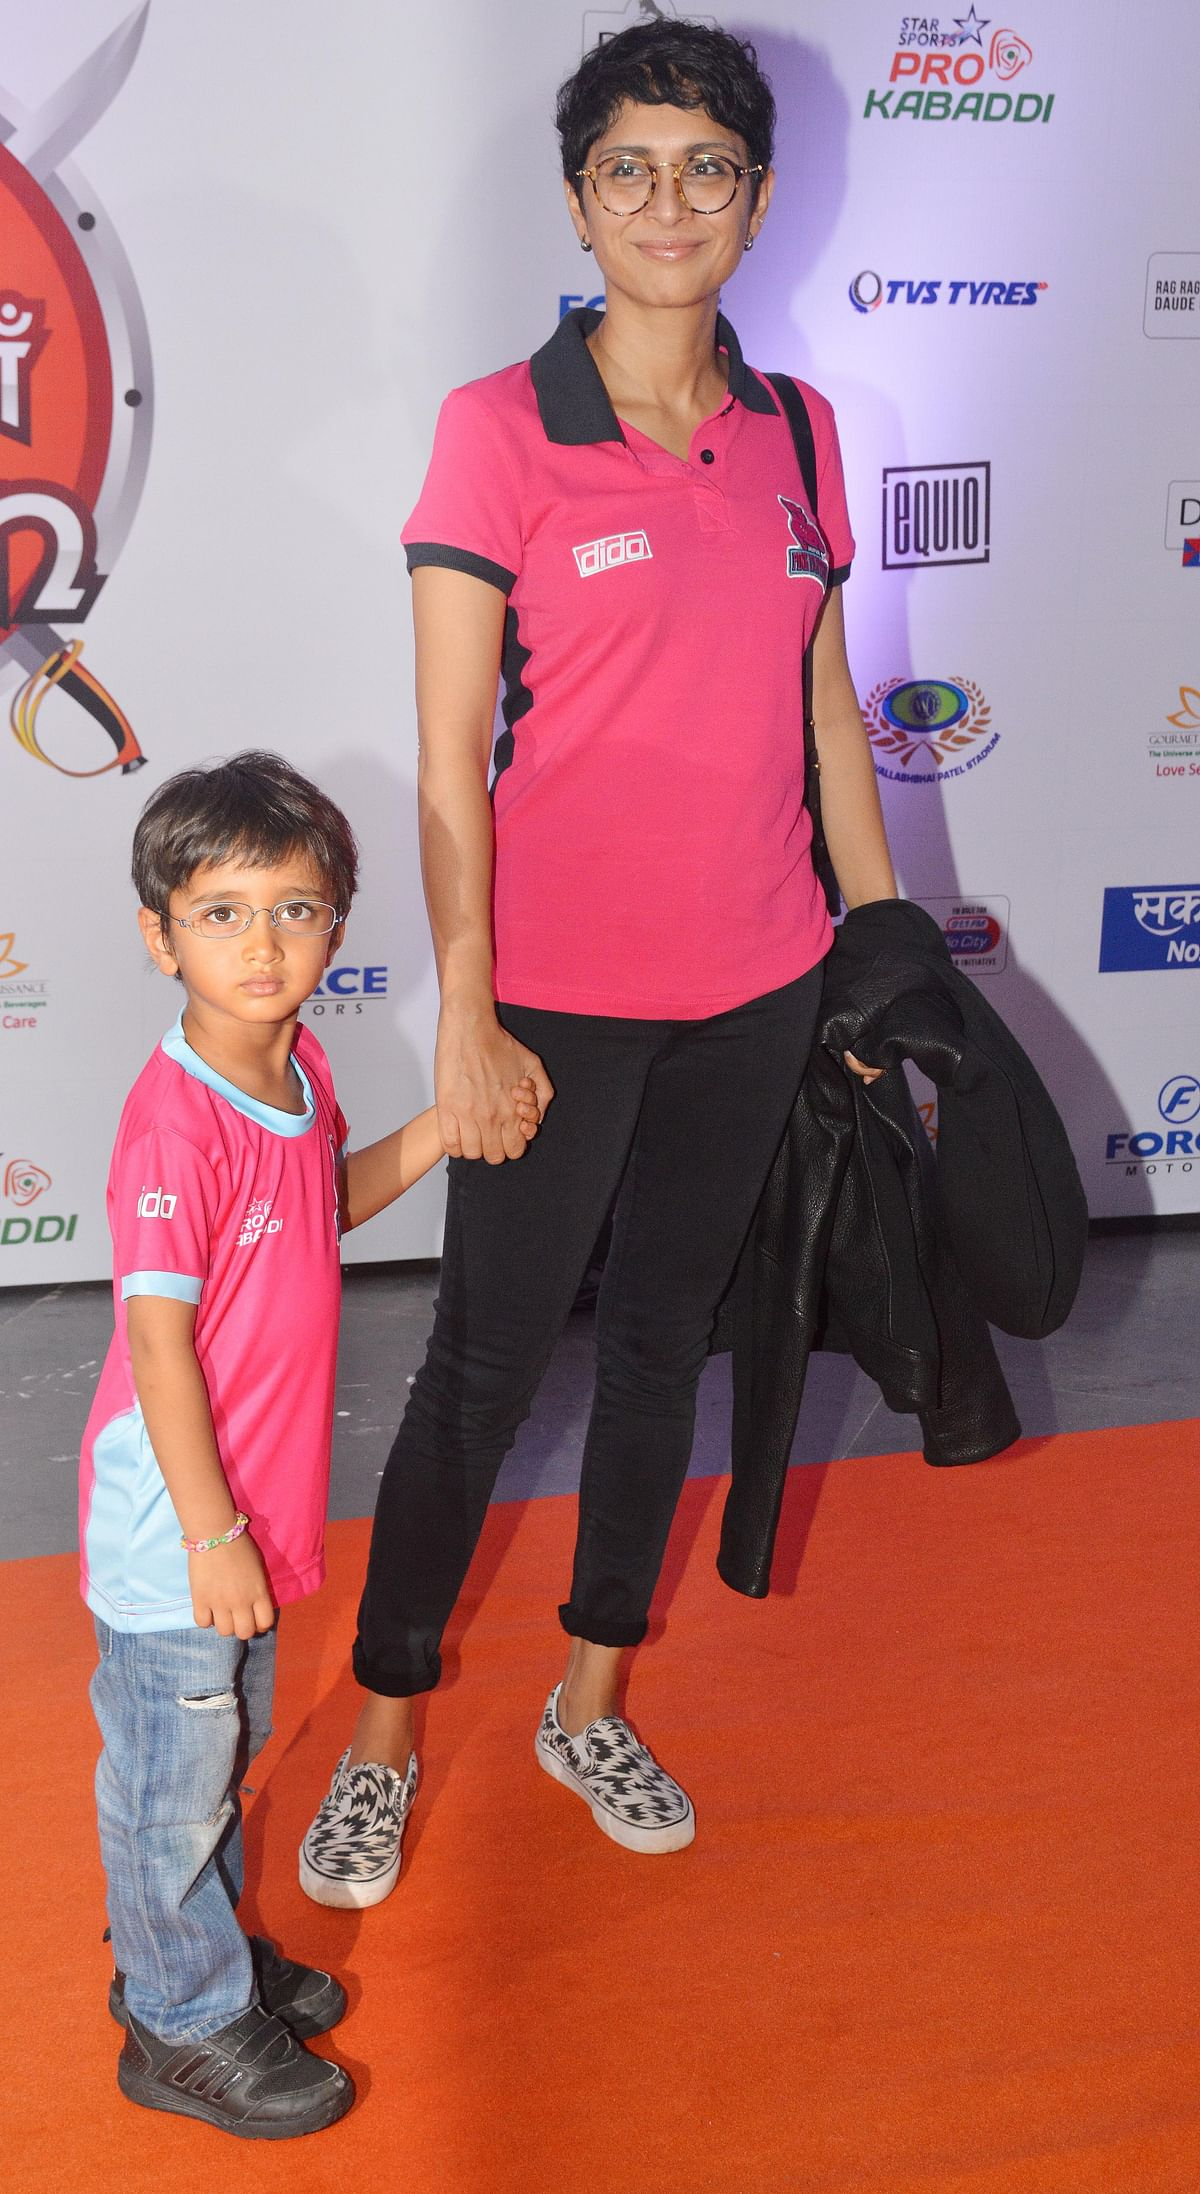 Kiran Rao attends the Pro Kabaddi League with son Azaad. (Photo: Yogen Shah)